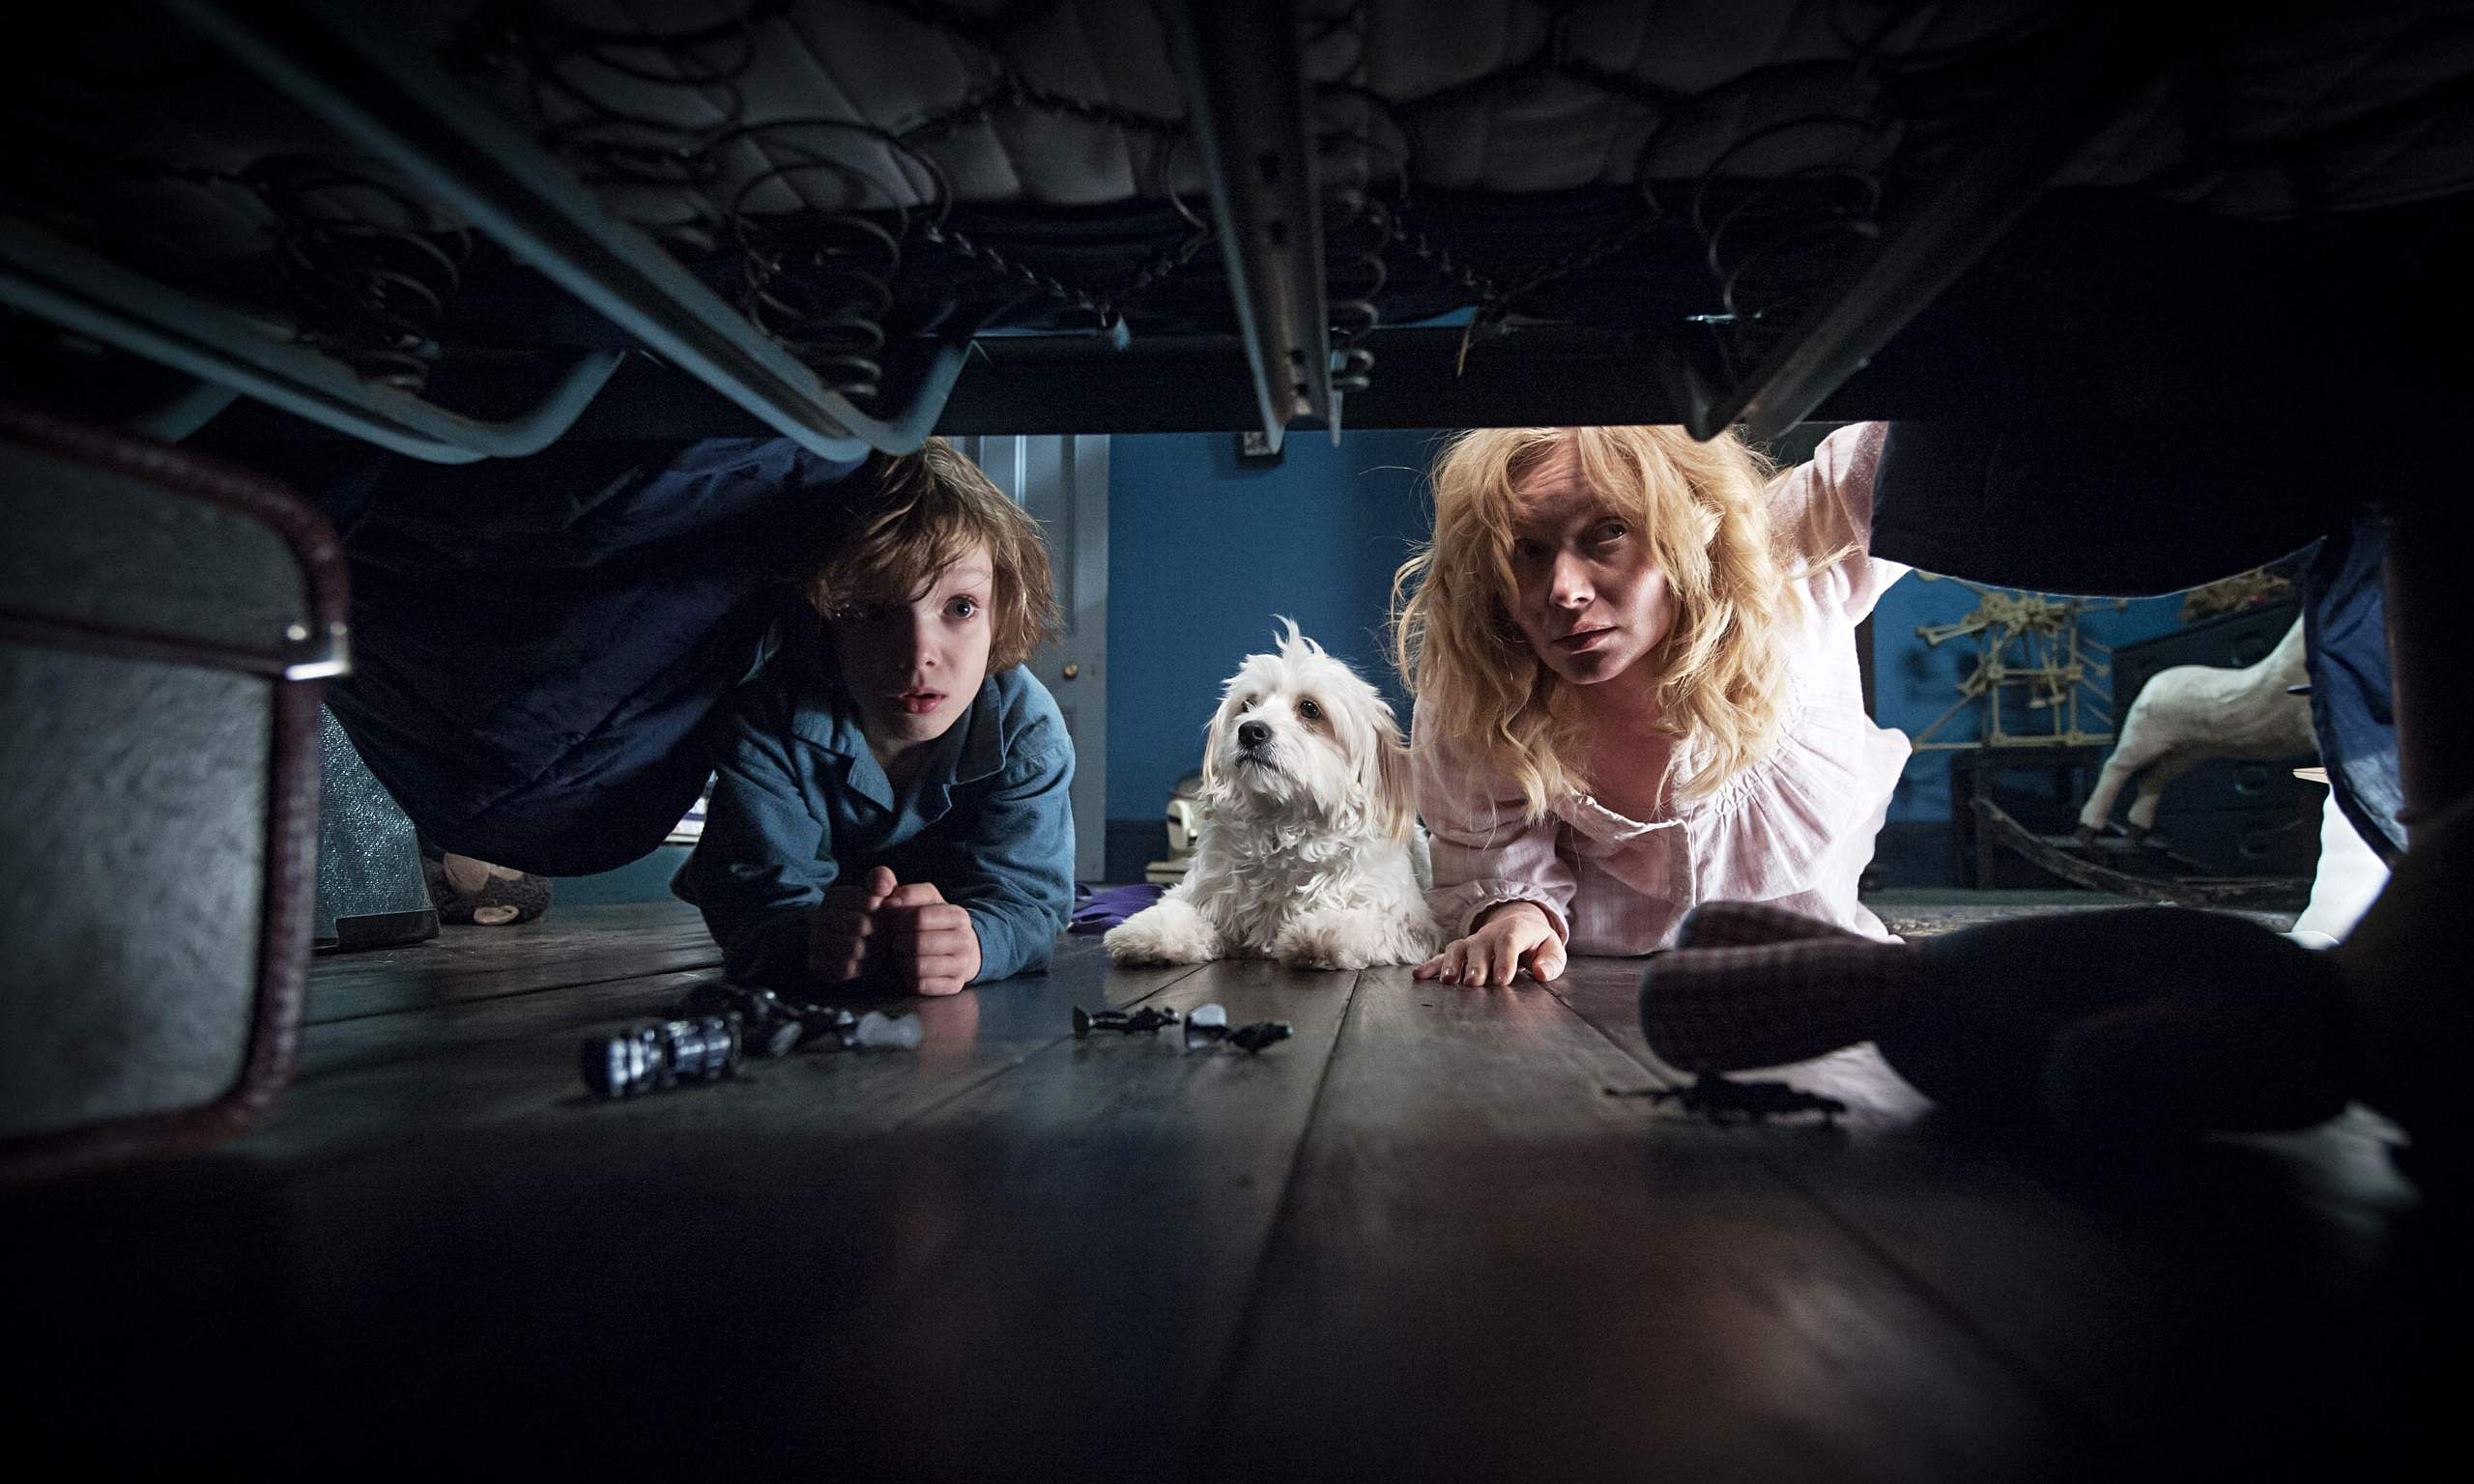 A still from The Babadook